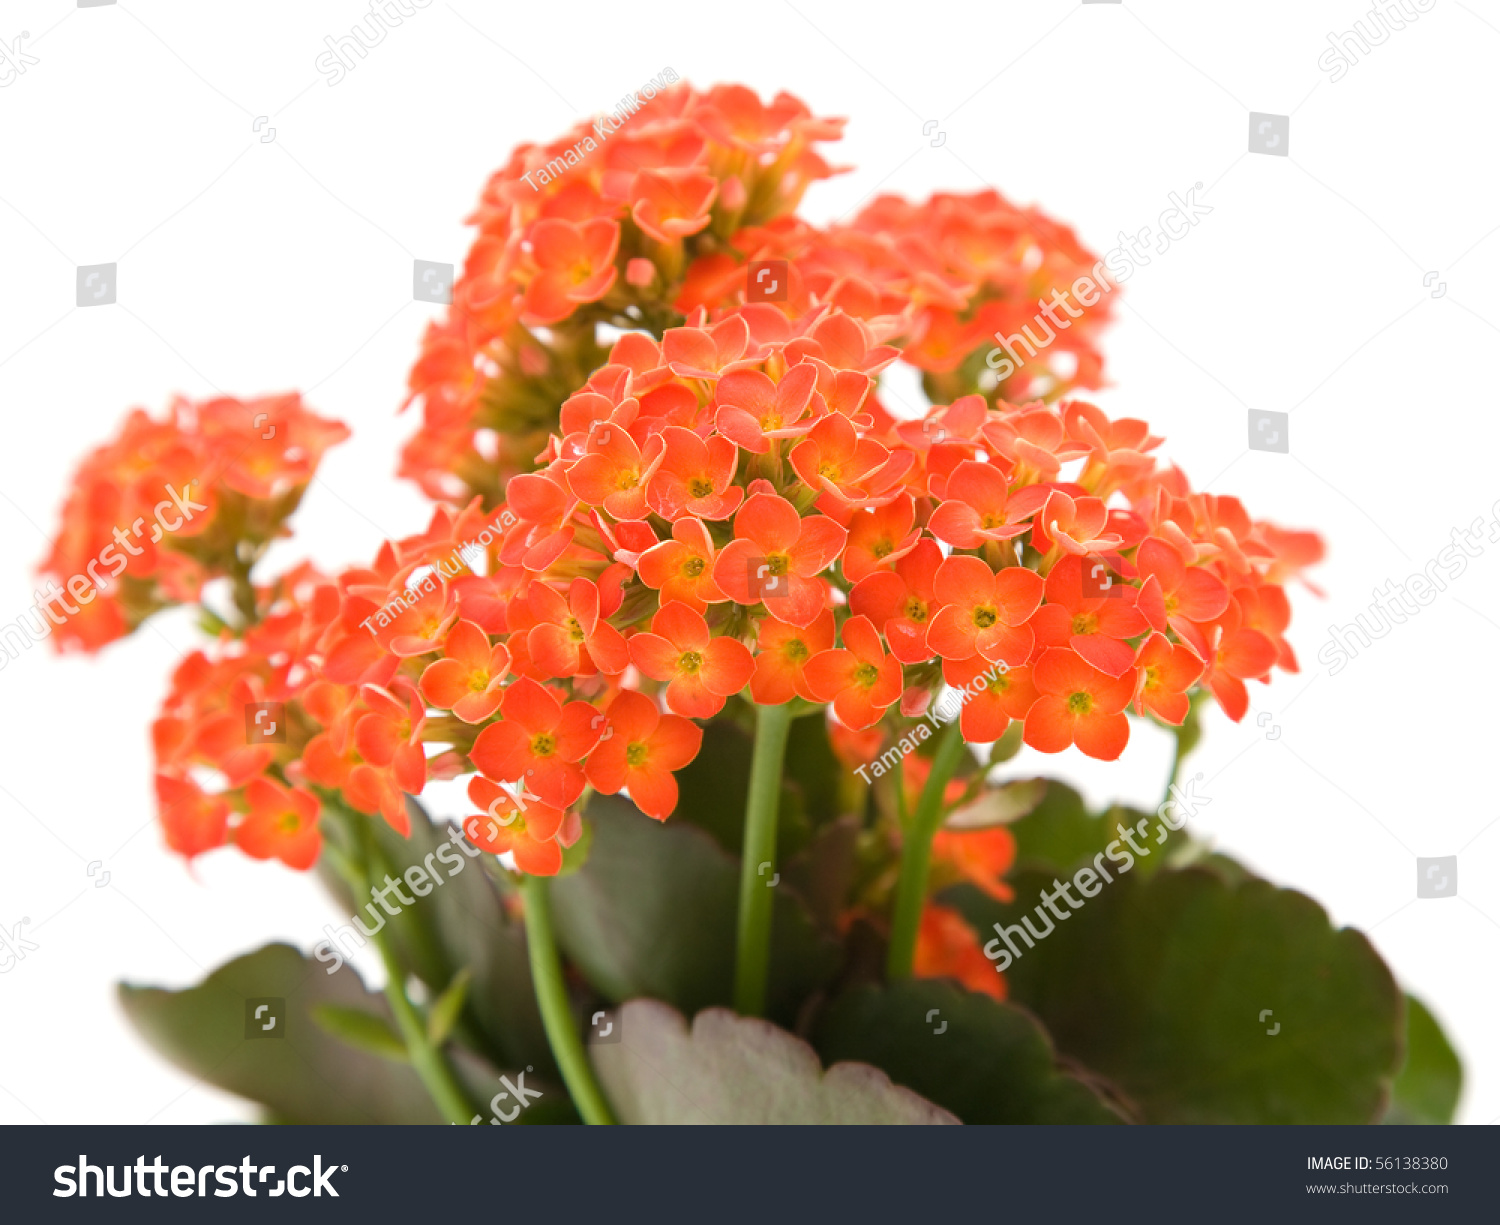 kalanchoe house plant html with Stock Photo Bright Orange Flowering Kalanchoe Plant Isolated On White on 2253759list besides The Most Popular Indoor Plants Of Germany furthermore Stock Photo Bright Orange Flowering Kalanchoe Plant Isolated On White in addition Beliebteste Zimmerpflanzen Topfpflanzen together with Kalanchoe.